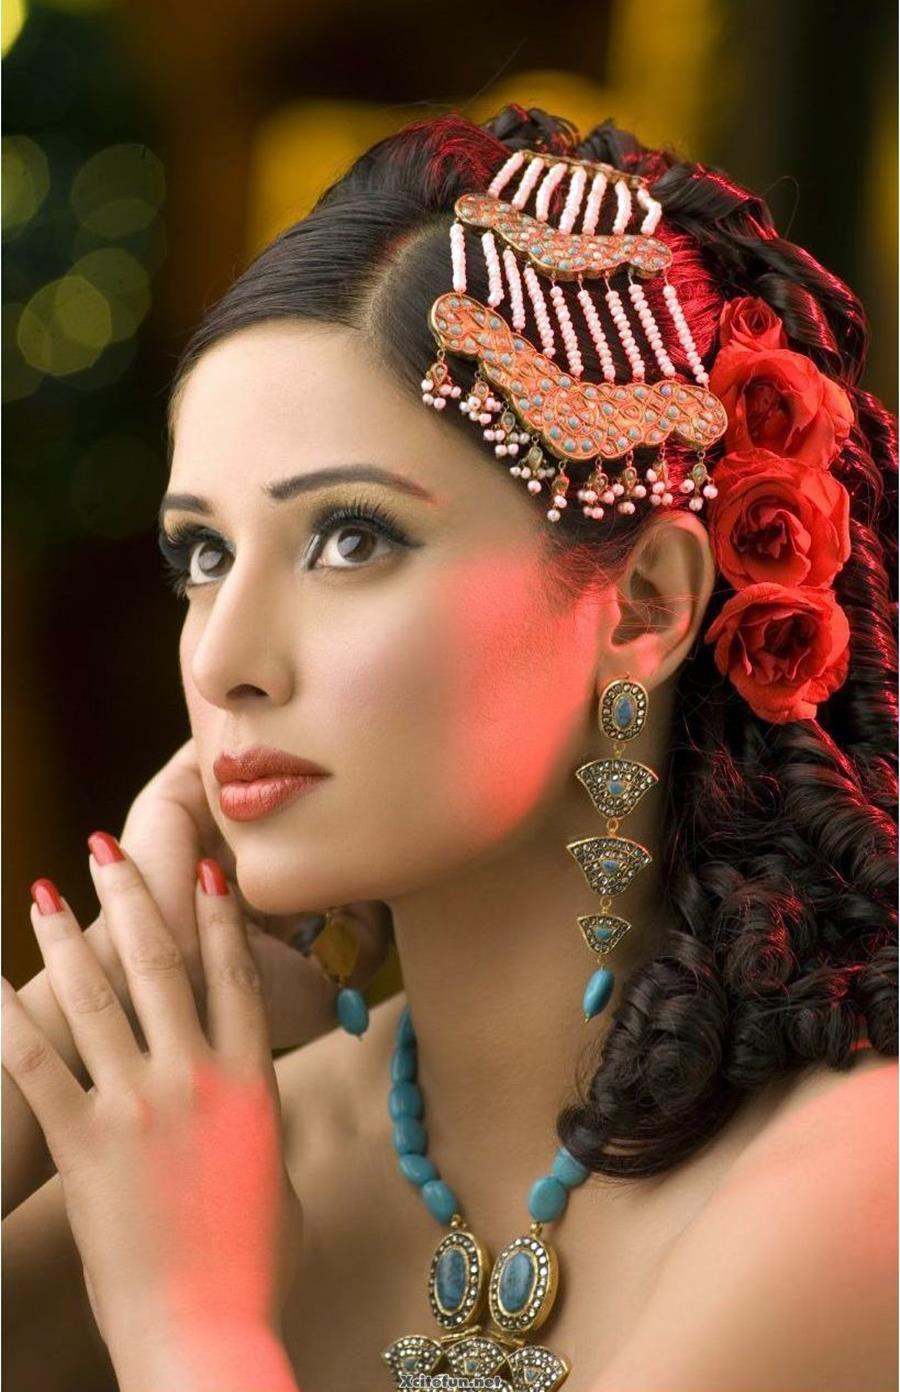 Asian Bridal Makeup And Jewelry Pics Xcitefun Net